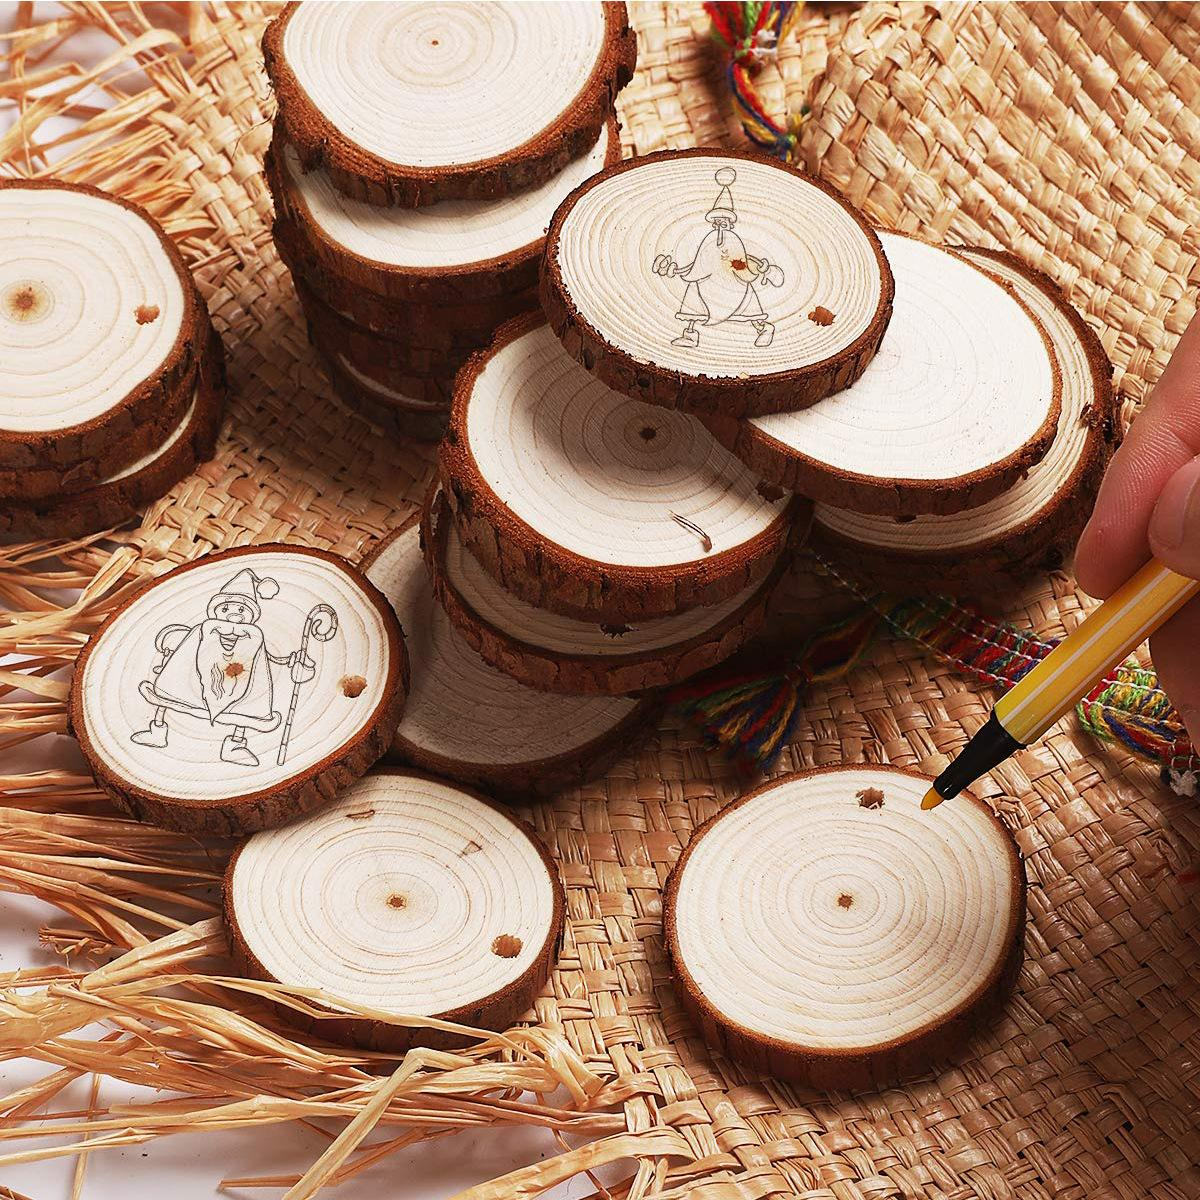 Christmas Ornaments Wood DIY Small Wood Discs Circles Painting Round Pine Slices w/ Hole Jutes Party Supplies 6CM-7 CM EEA756